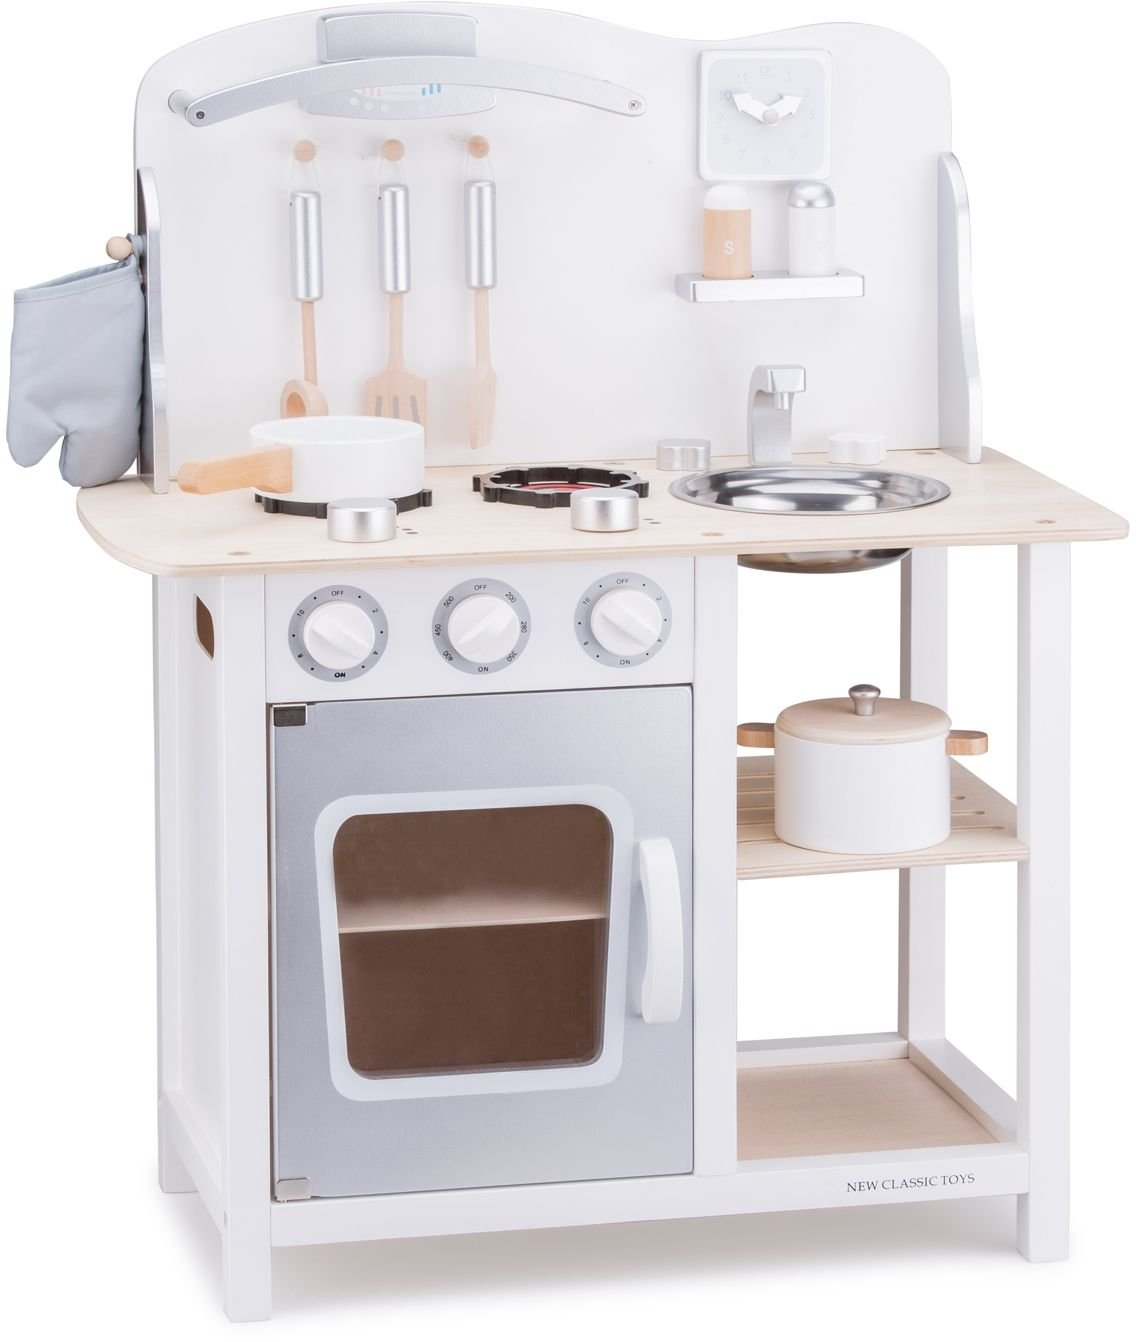 New Classic Toys - 11053 - Kitchen & Food Toys - Play Kitchen - Bon Appetit Playset - White - Including Accessories